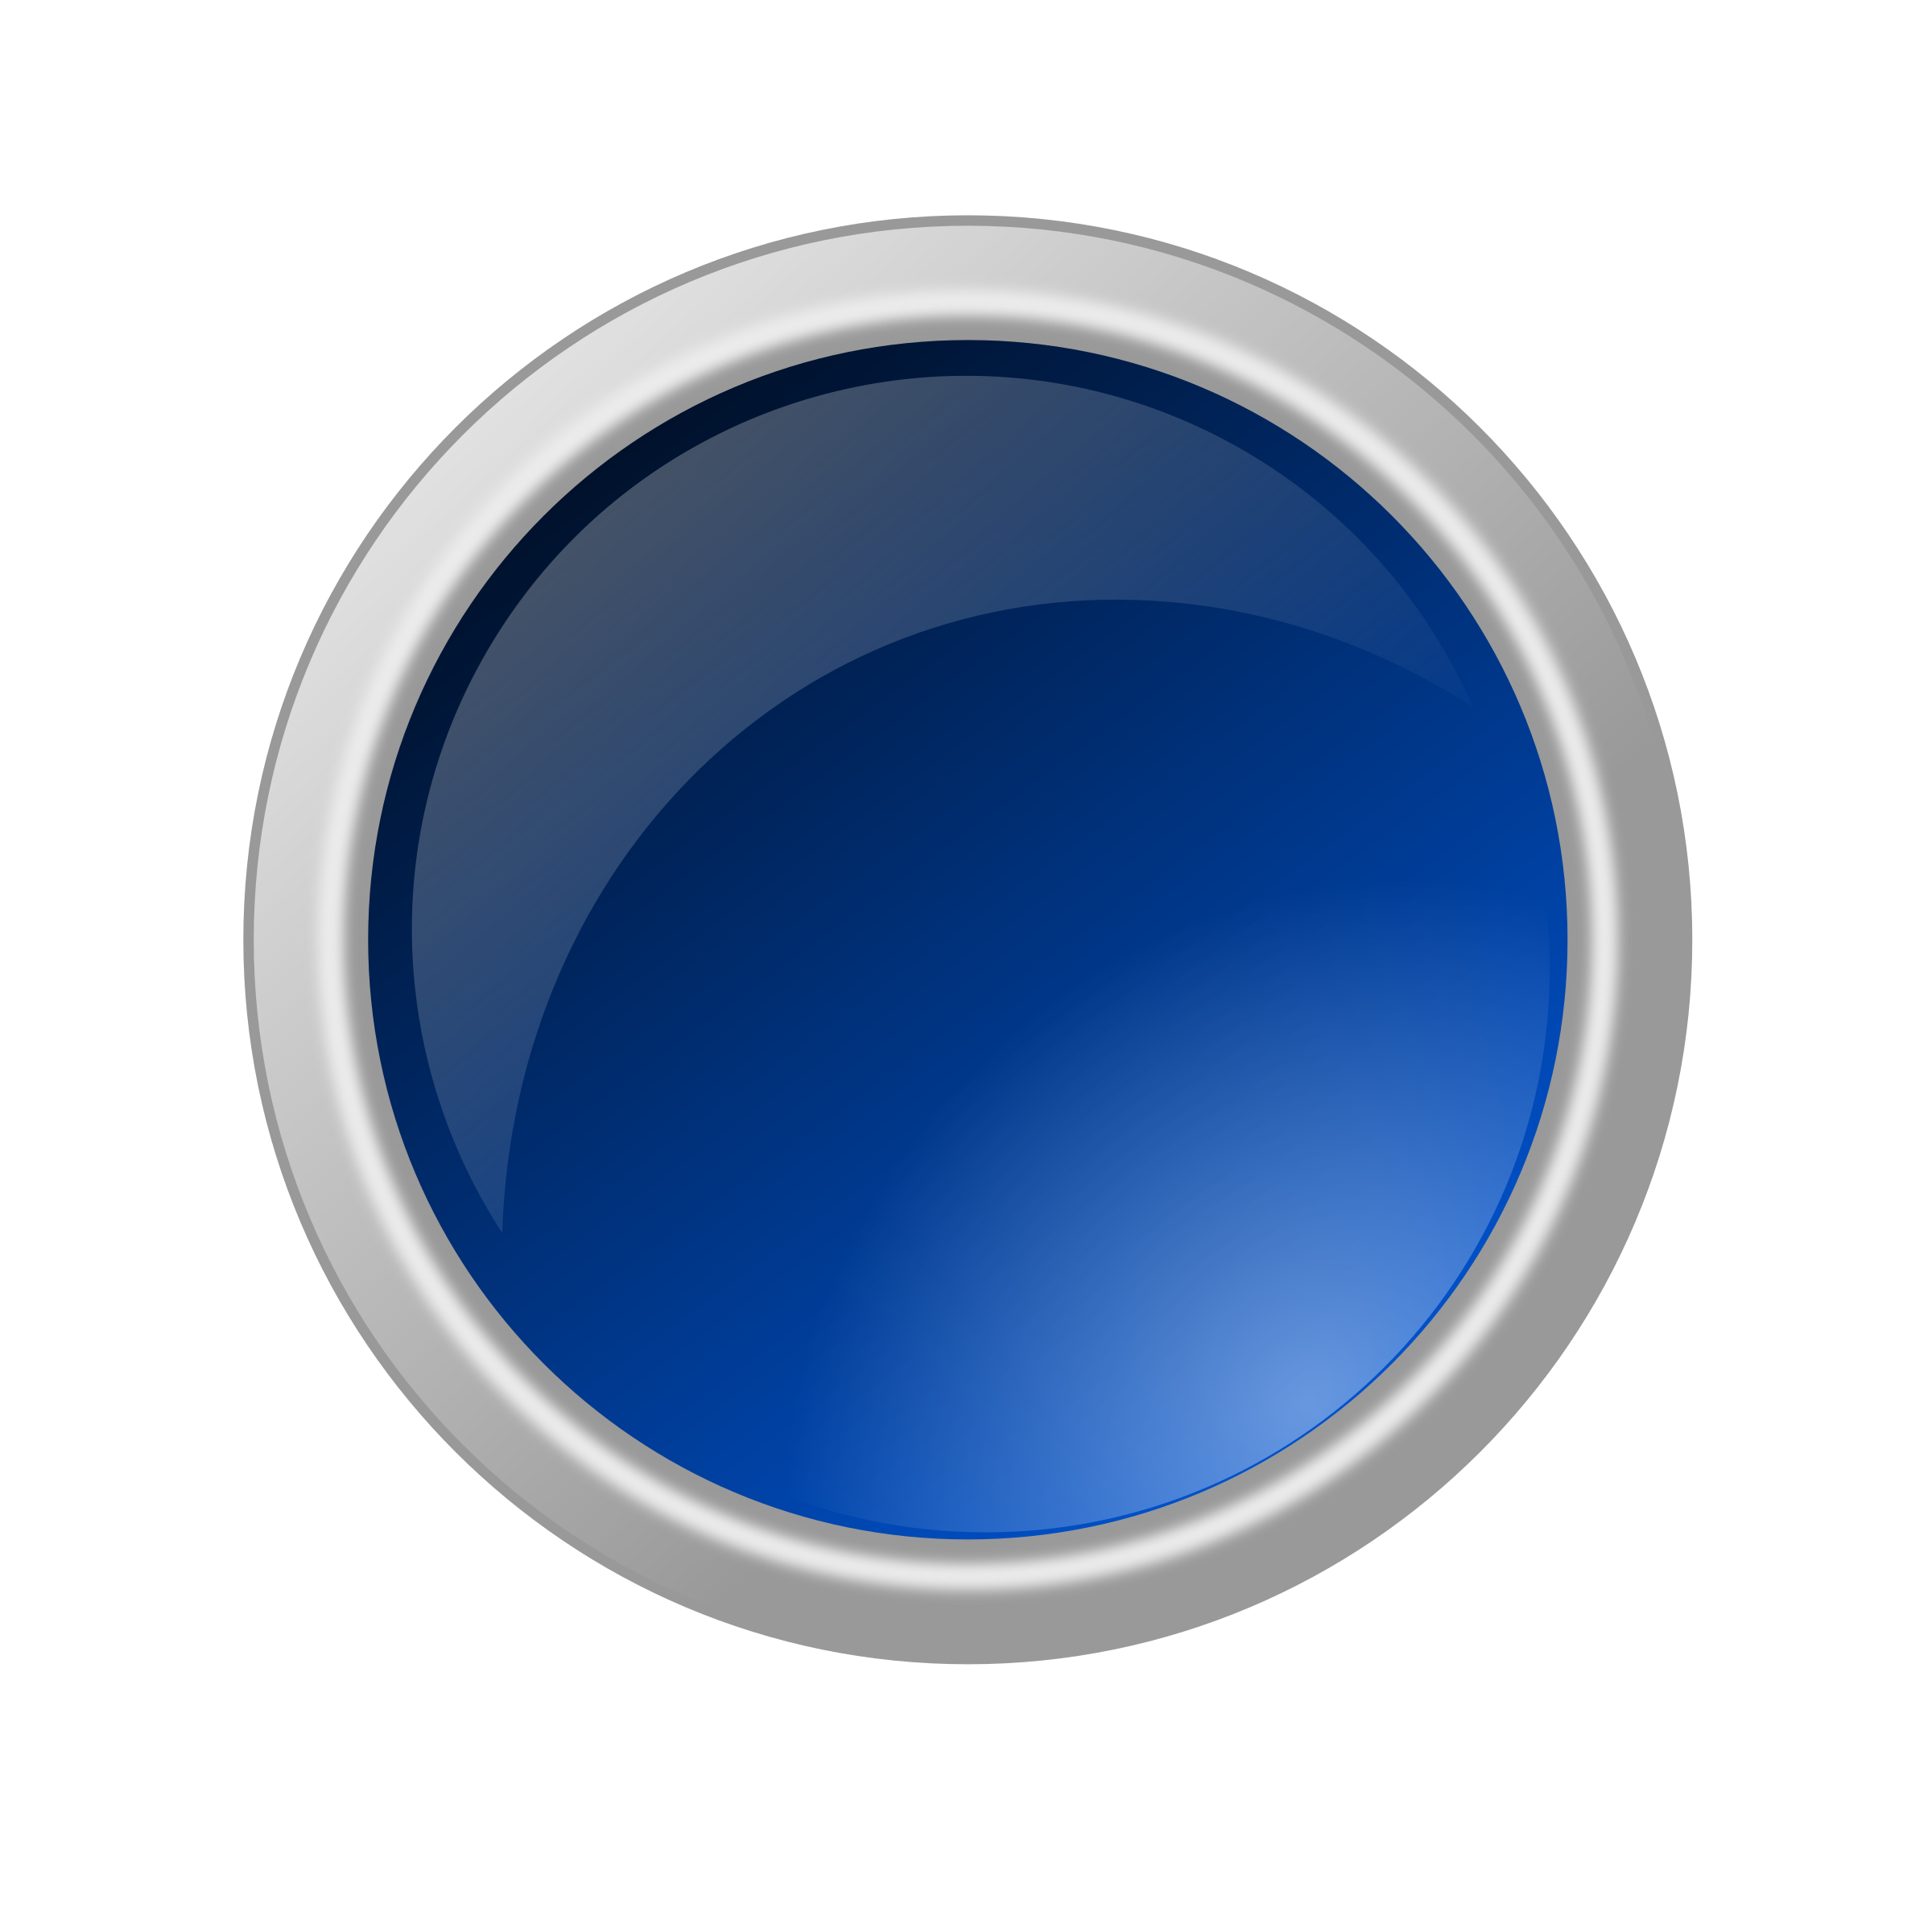 Glossy big image png. Button clipart blue button